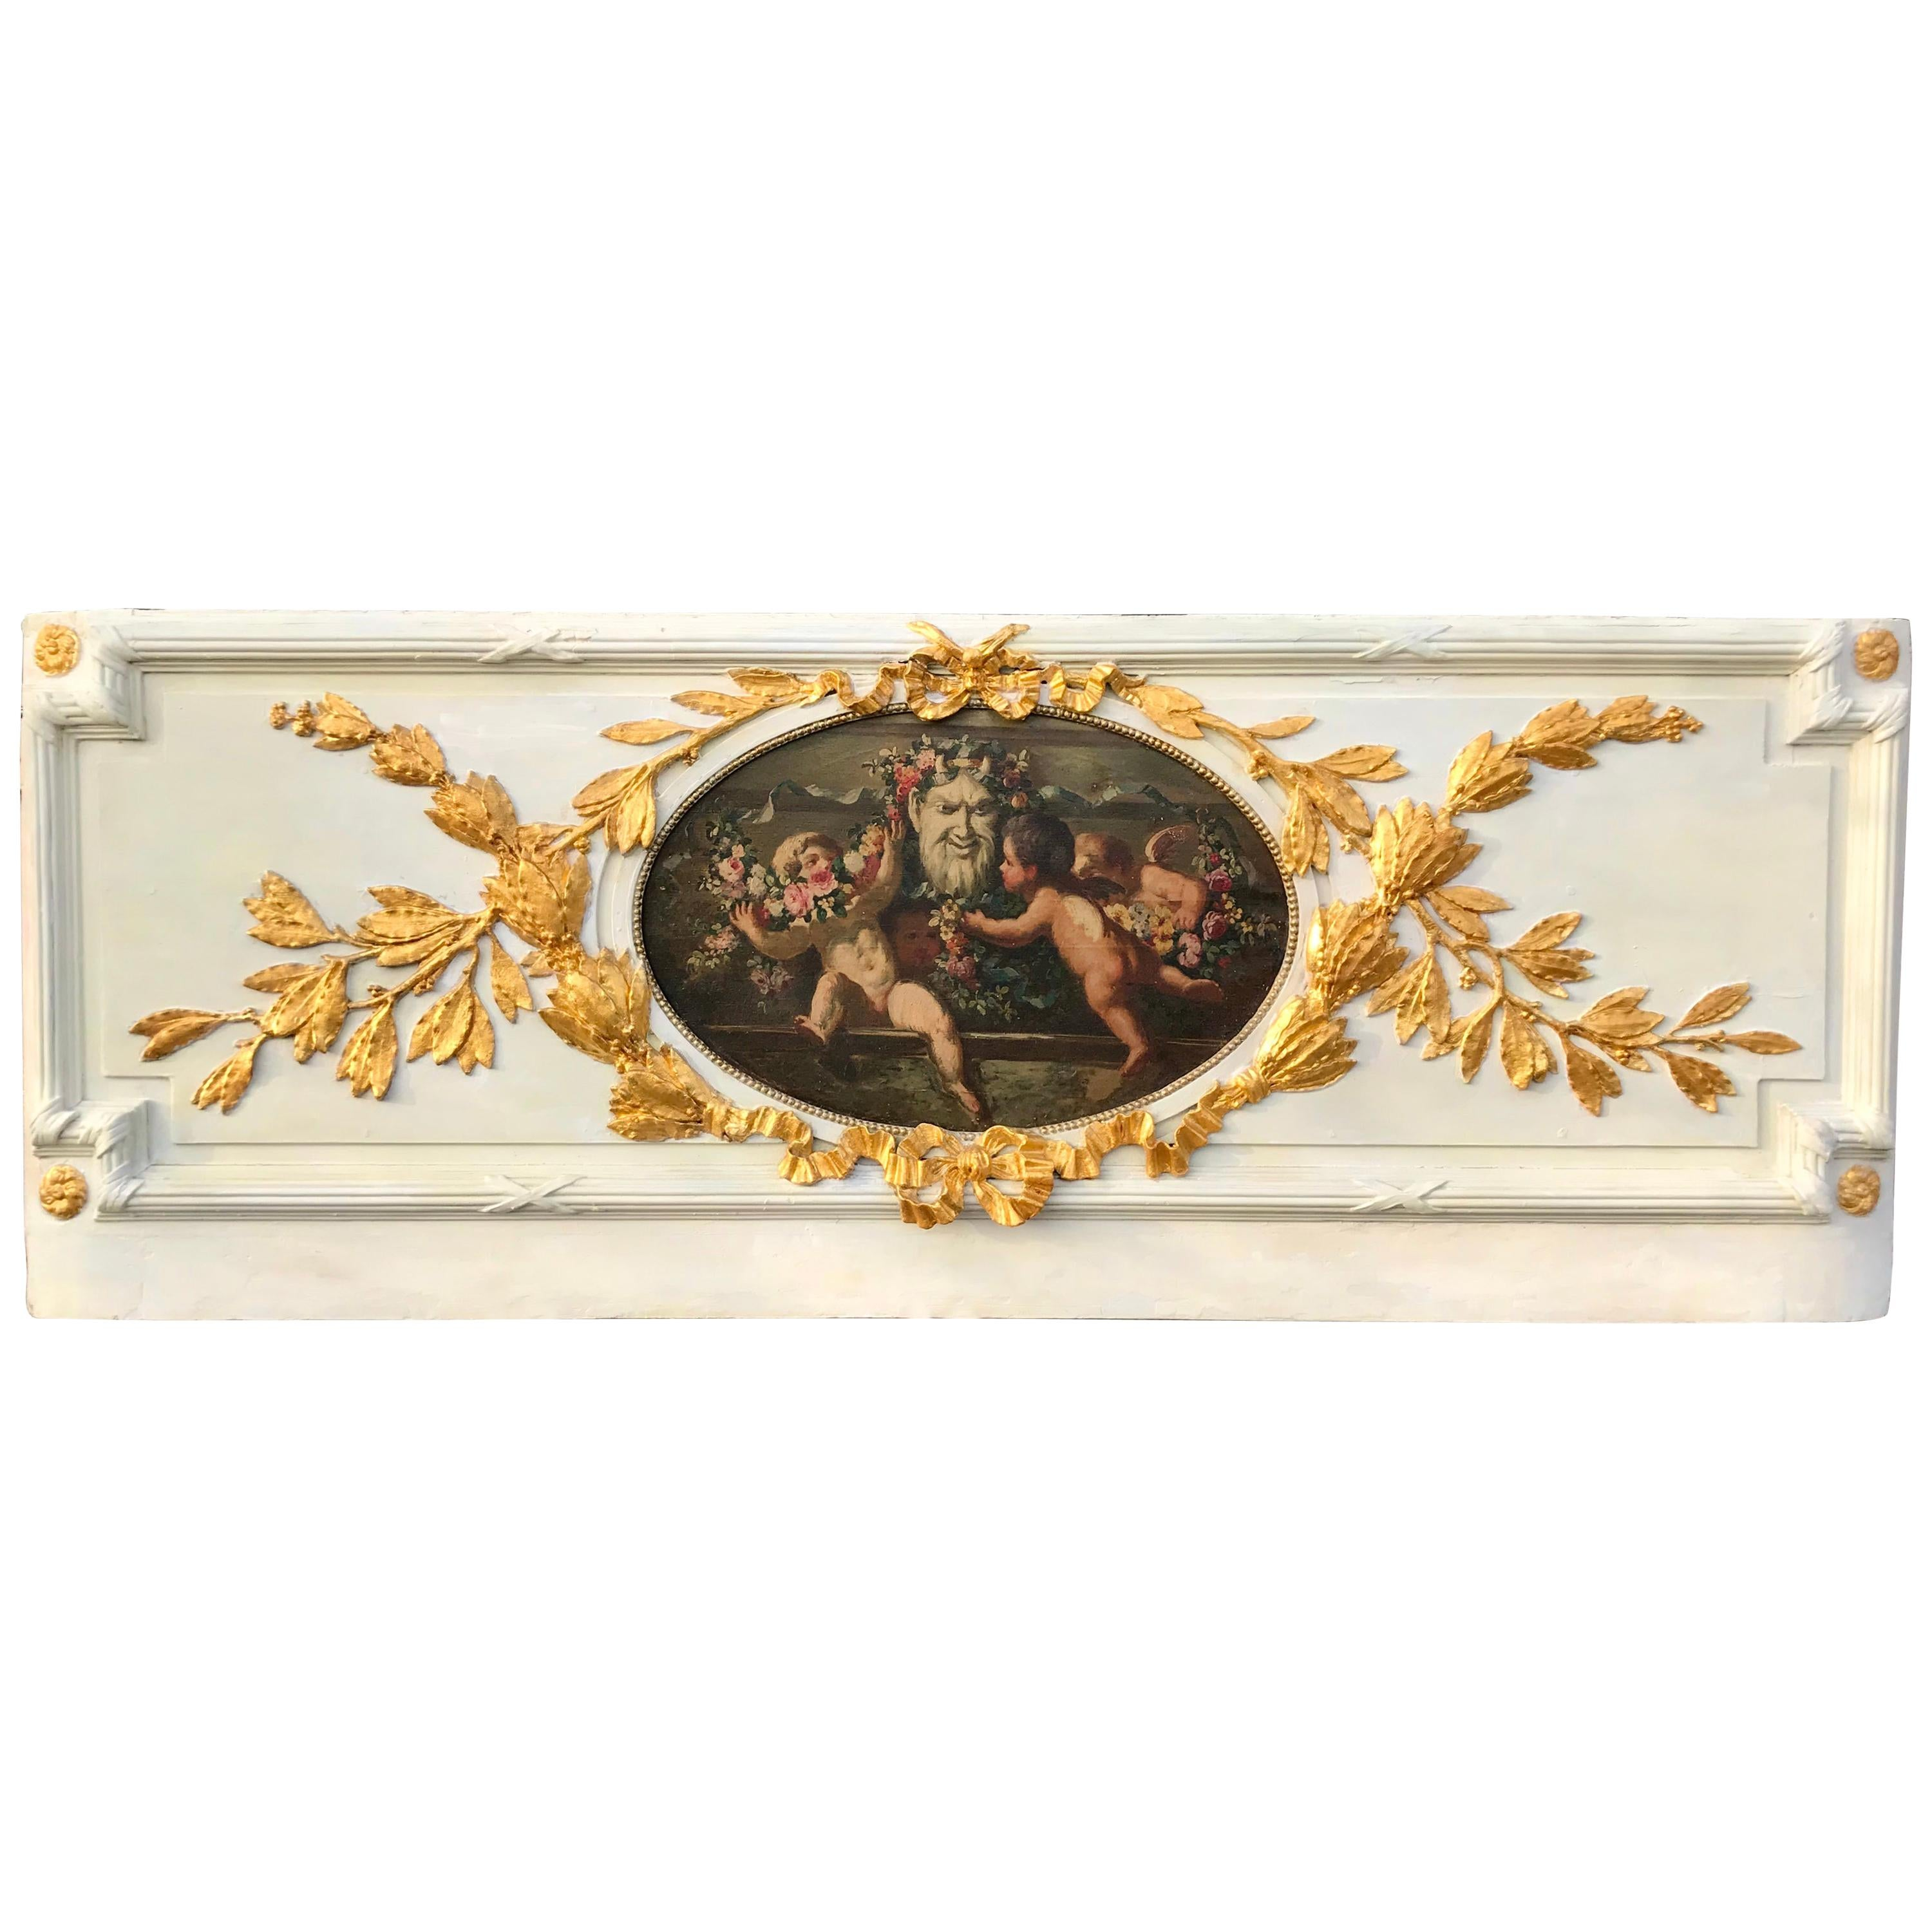 Carved Giltwood and Painted Boiserie Overdoor Panel